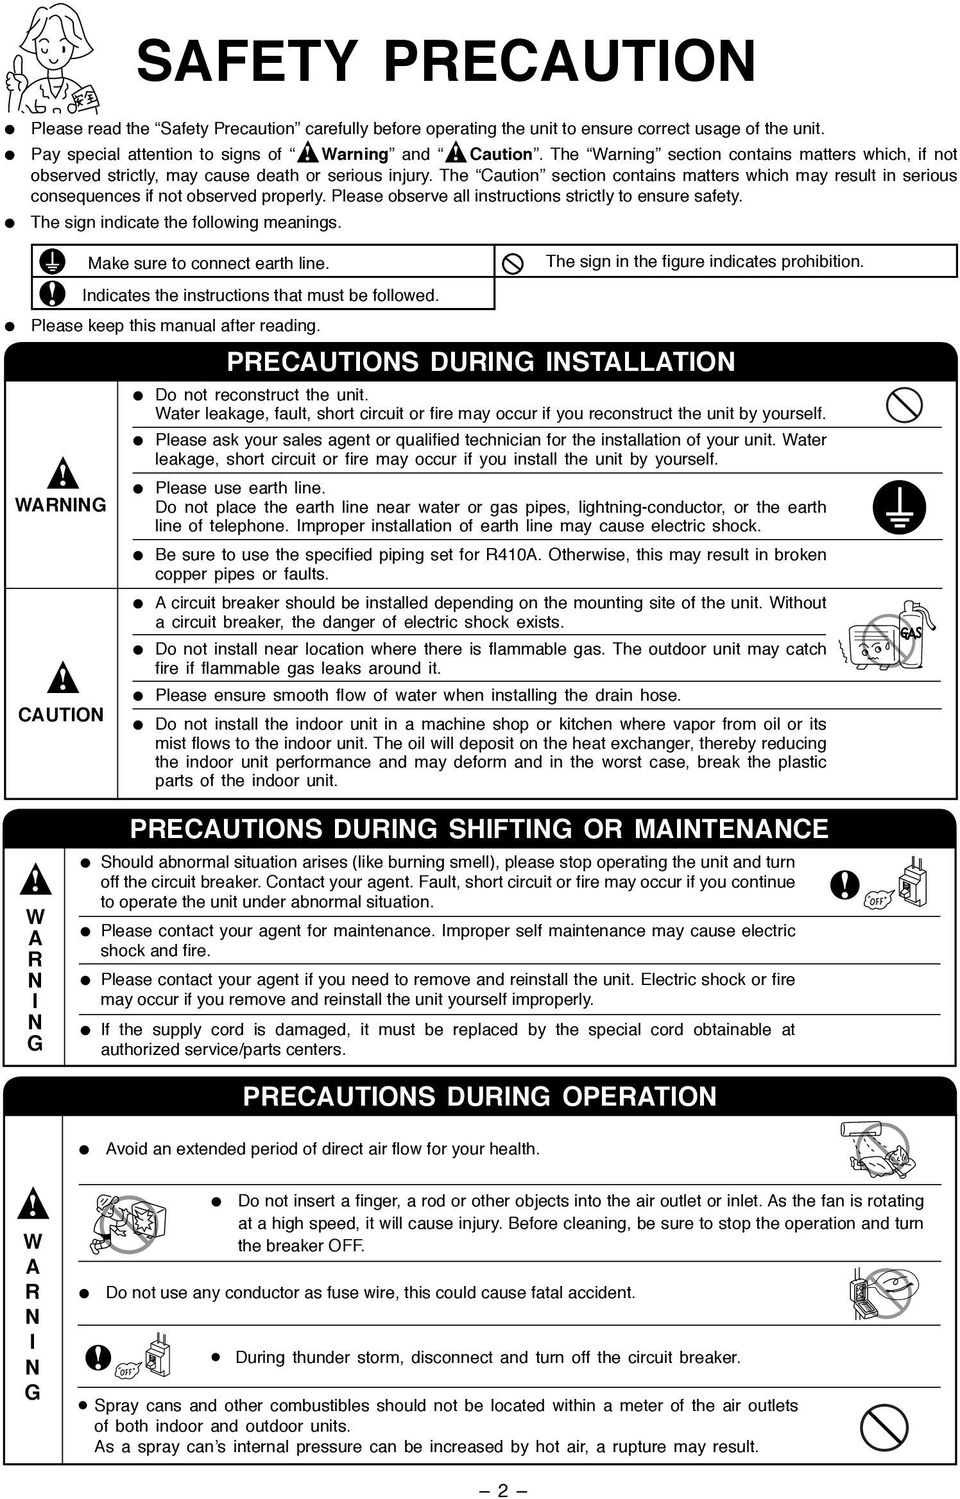 The Caution section contains matters which may result in serious consequences if not observed properly. Please observe all instructions strictly to ensure safety.